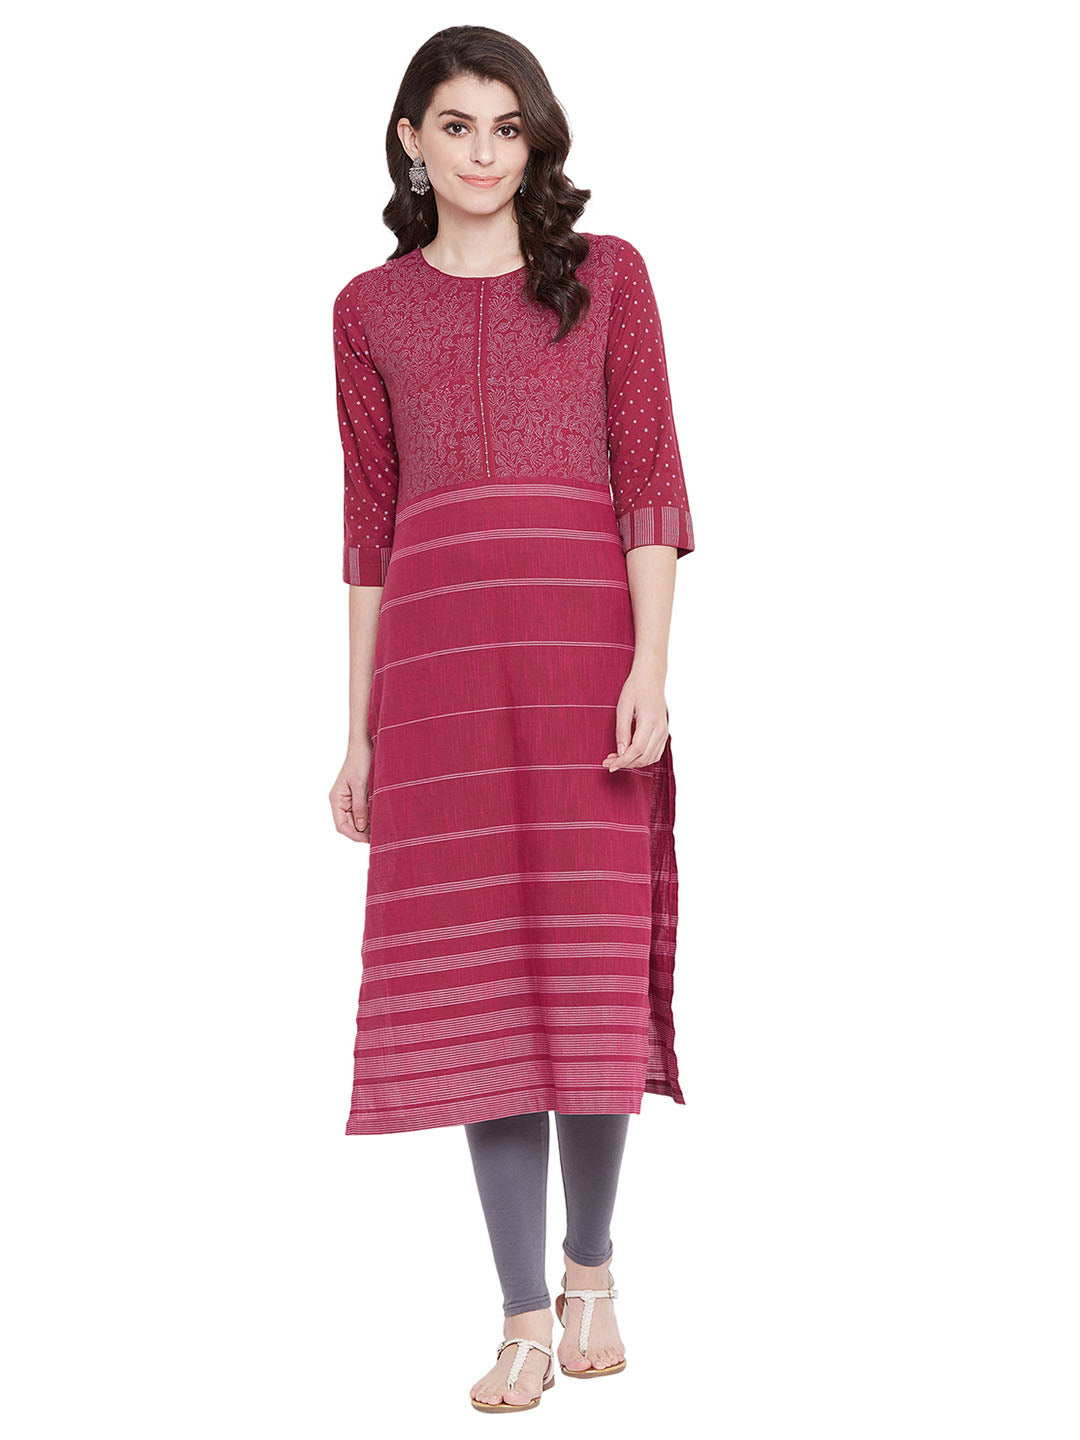 MEESAN Magenta Handloom Cotton Printed Kurti for Women